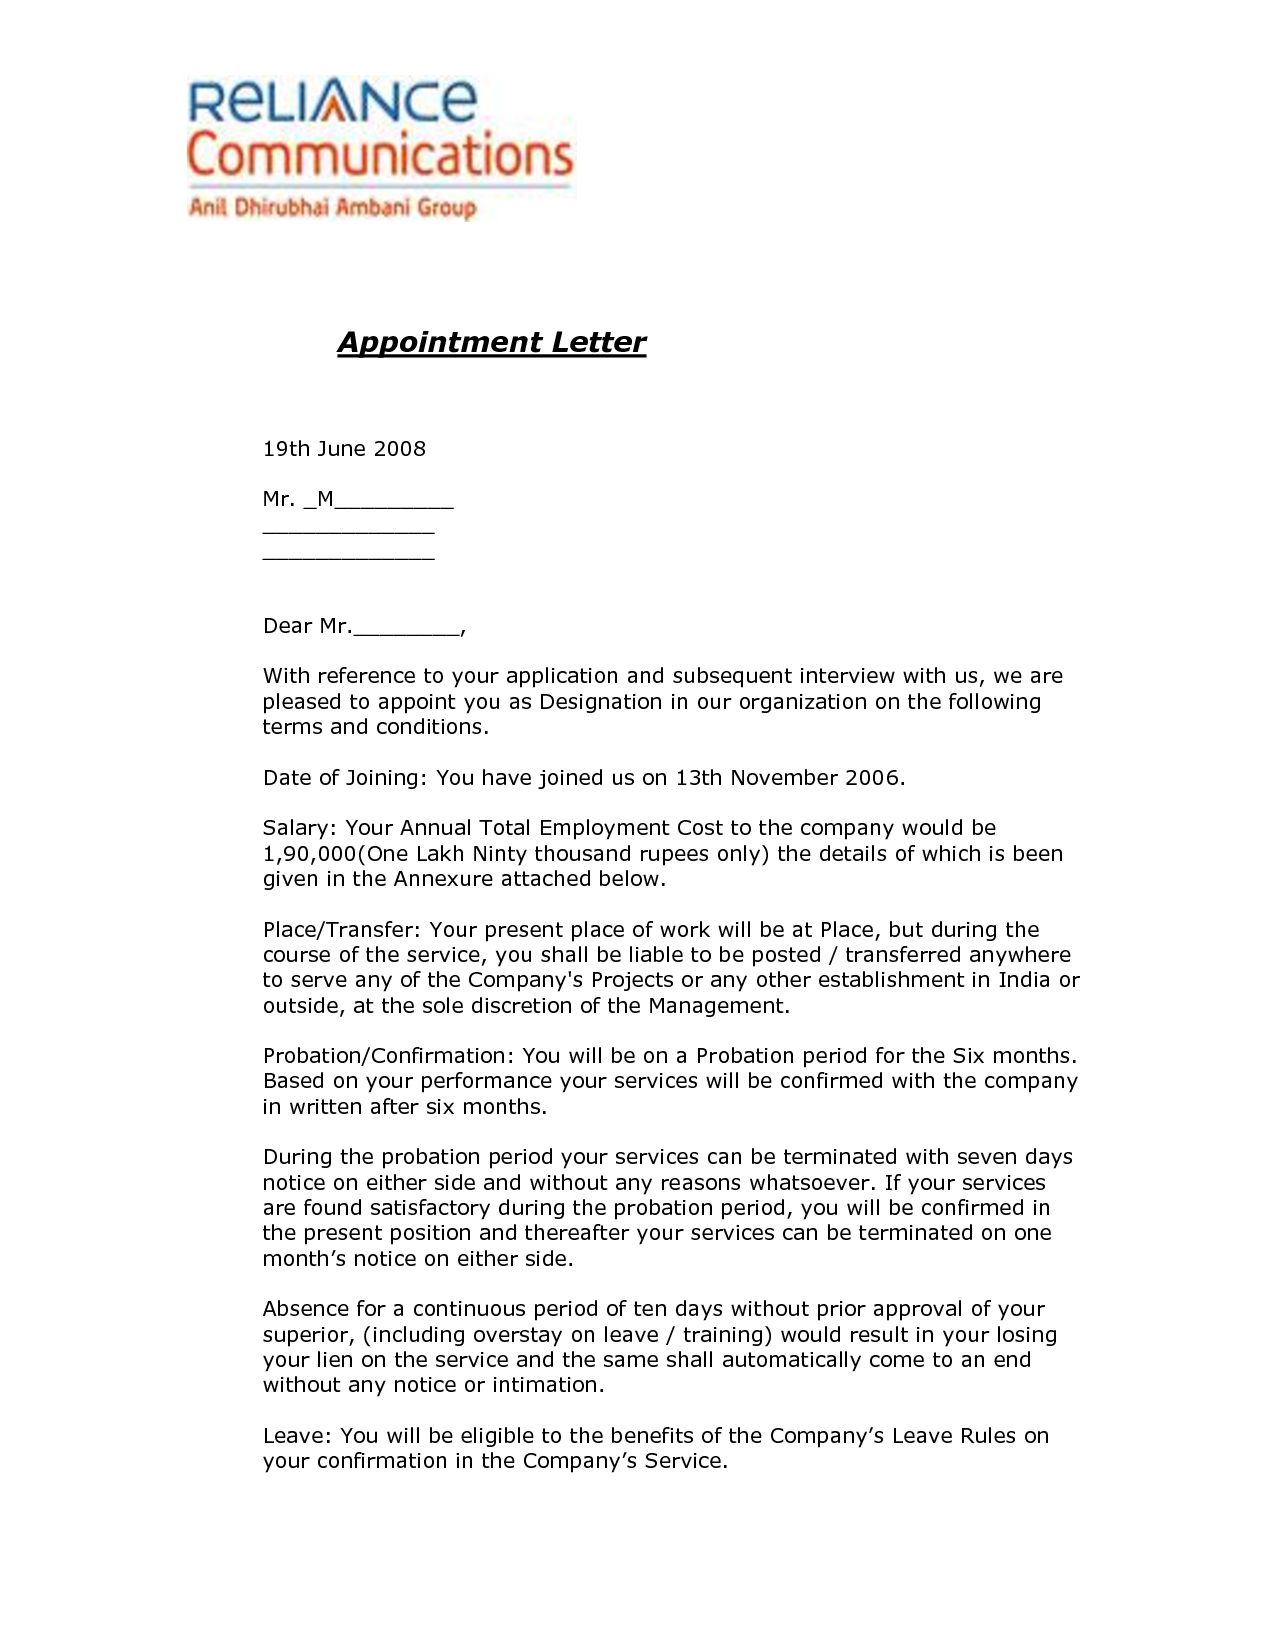 Joining letter format for offer letter format legal joining letter format for offer legal documents appointment page best free home design idea inspiration spiritdancerdesigns